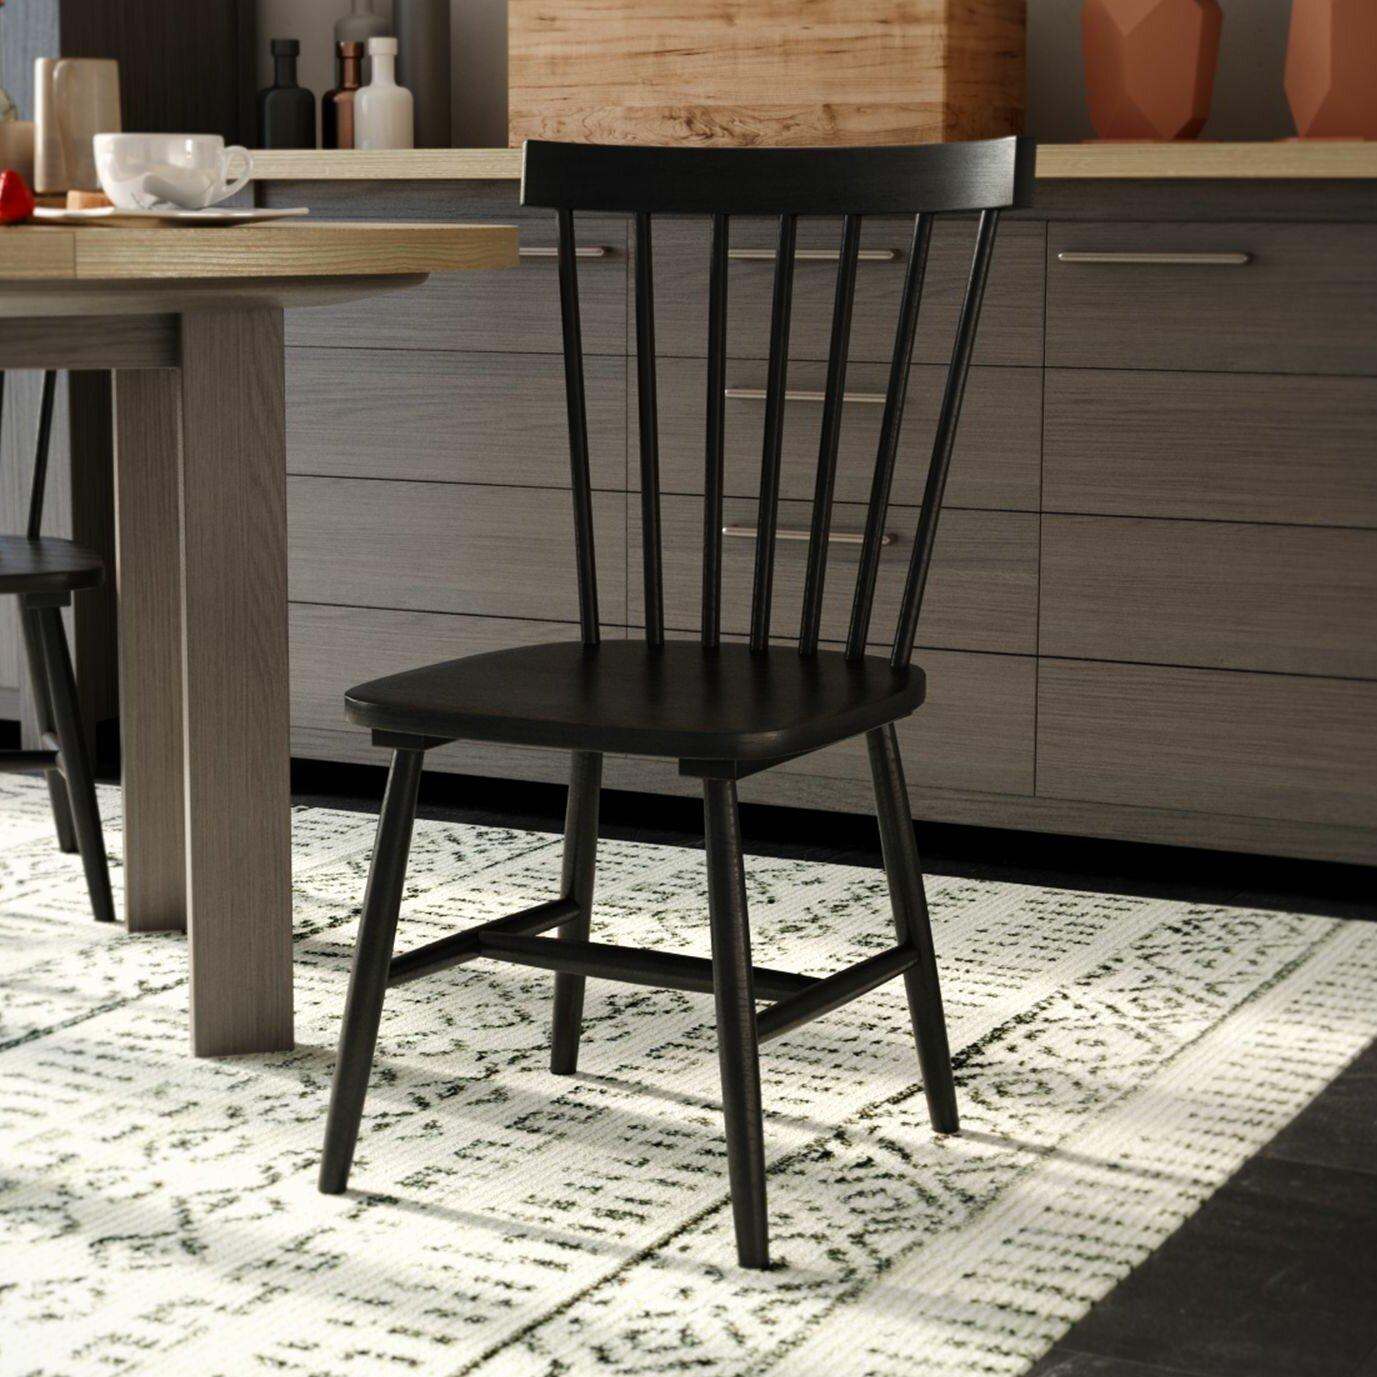 Kitchen Dining Chairs Solid Wood 8: Fjørde & Co Lawrence Solid Wood Dining Chair & Reviews